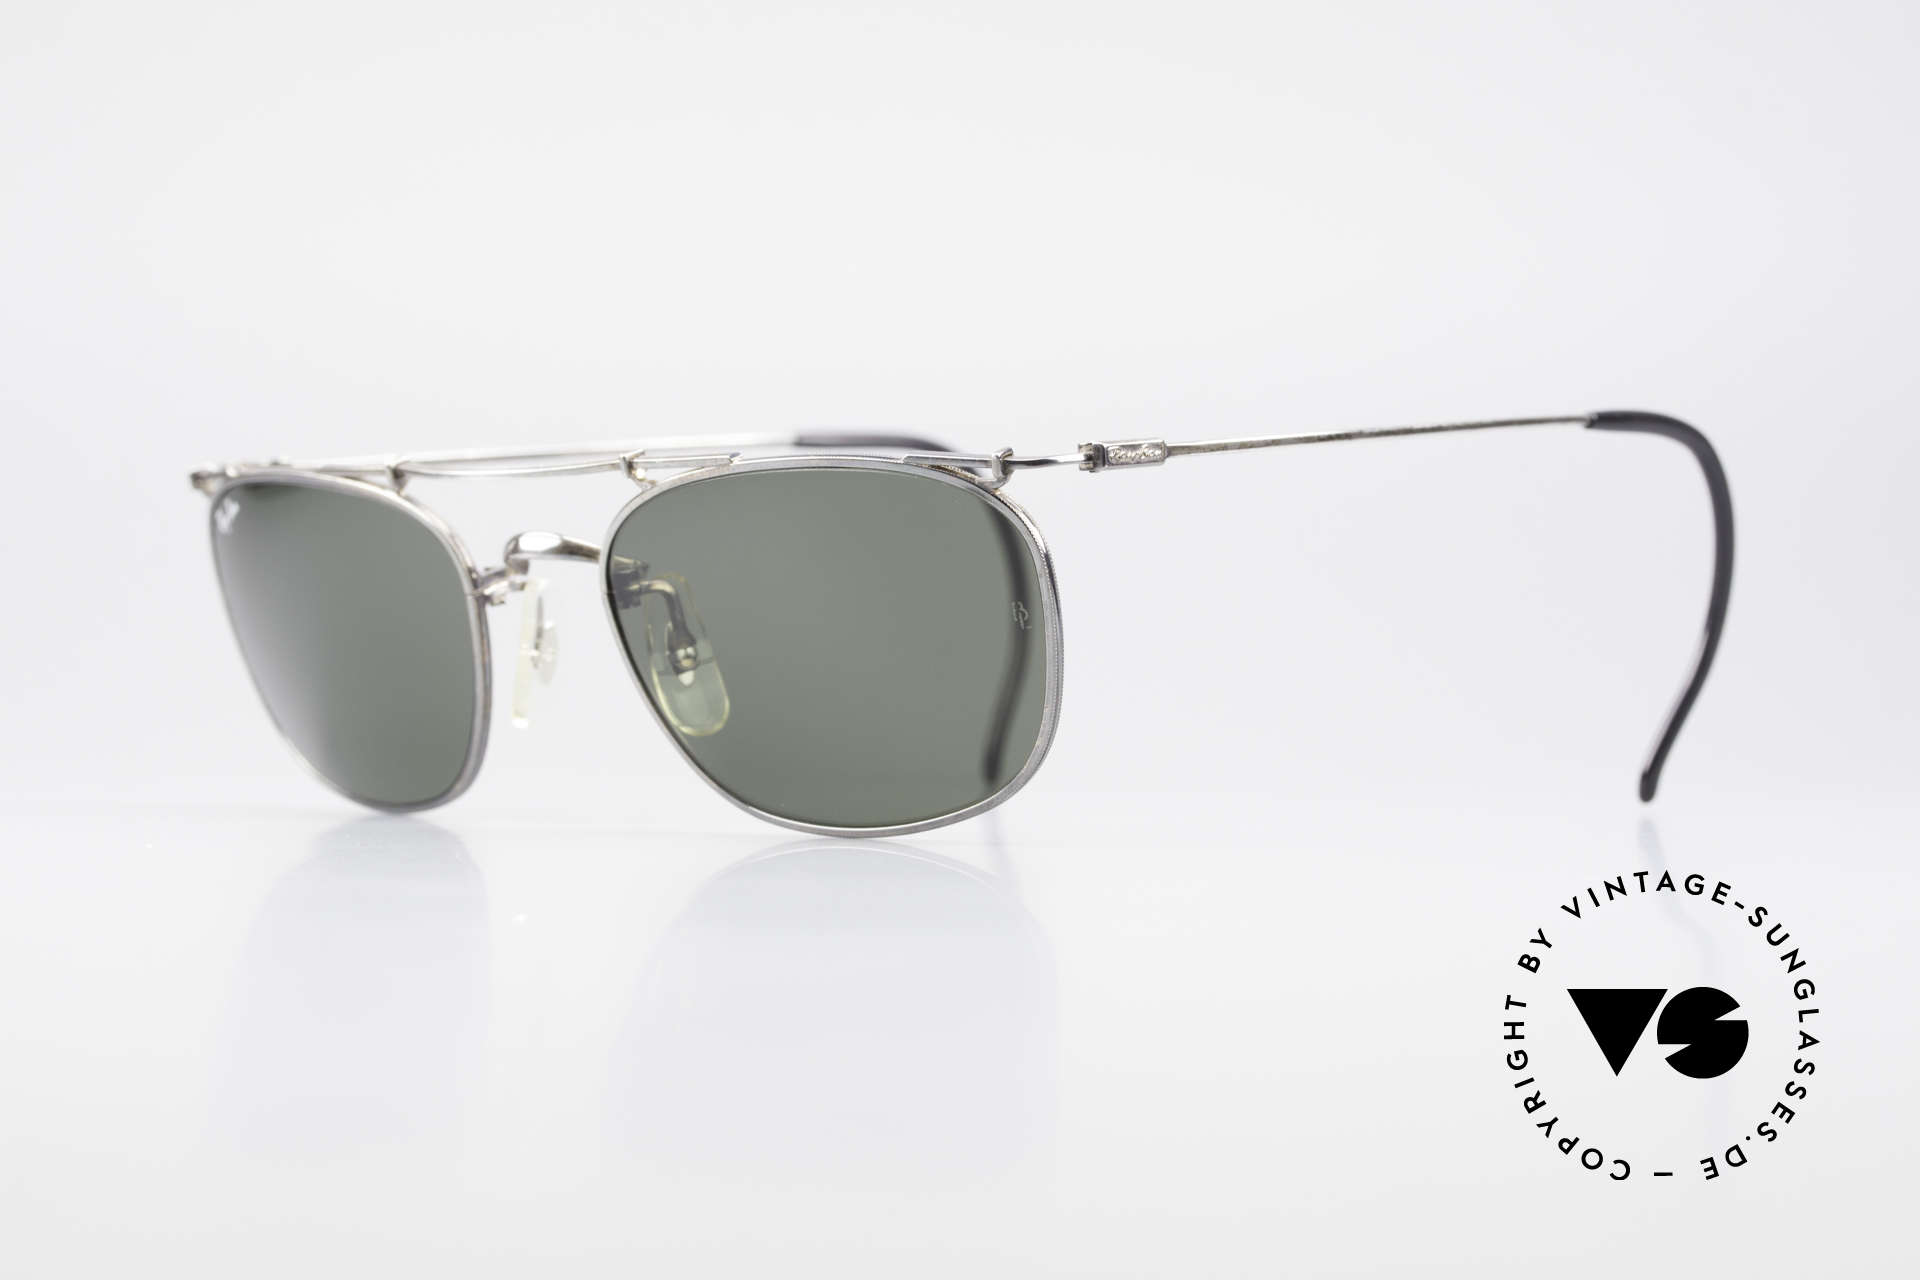 Ray Ban Deco Metals Carre Old B&L USA 90's Sunglasses, perfect fit & very pleasant to wear (1. class quality), Made for Men and Women